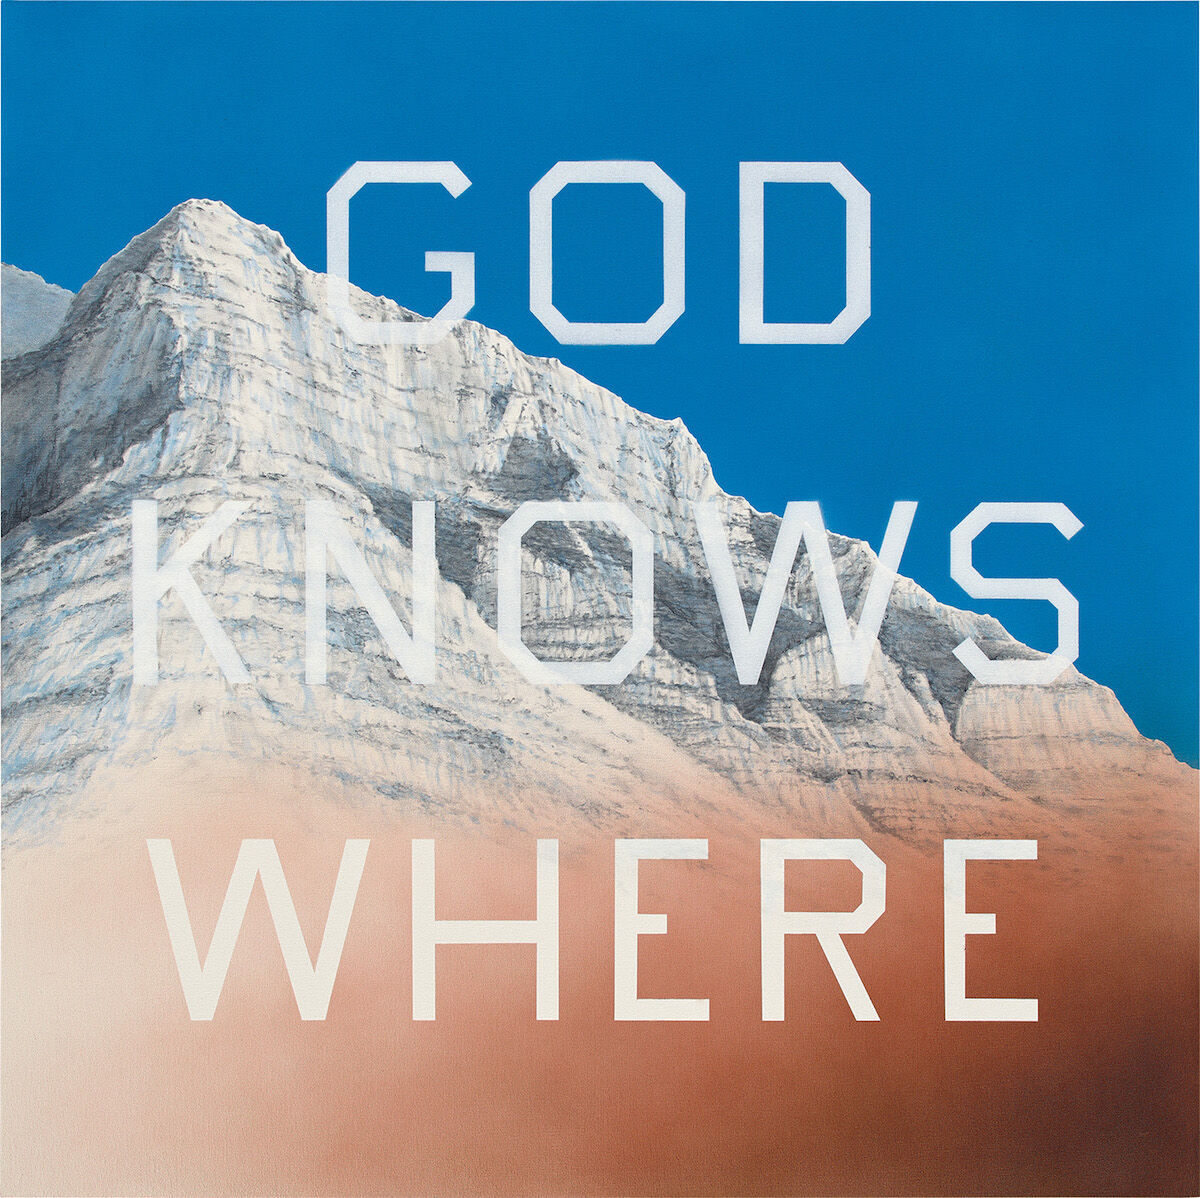 Ed Ruscha, God Knows Where, 2014. Sold for £3.3 million ($4.2 million). Courtesy Phillips.